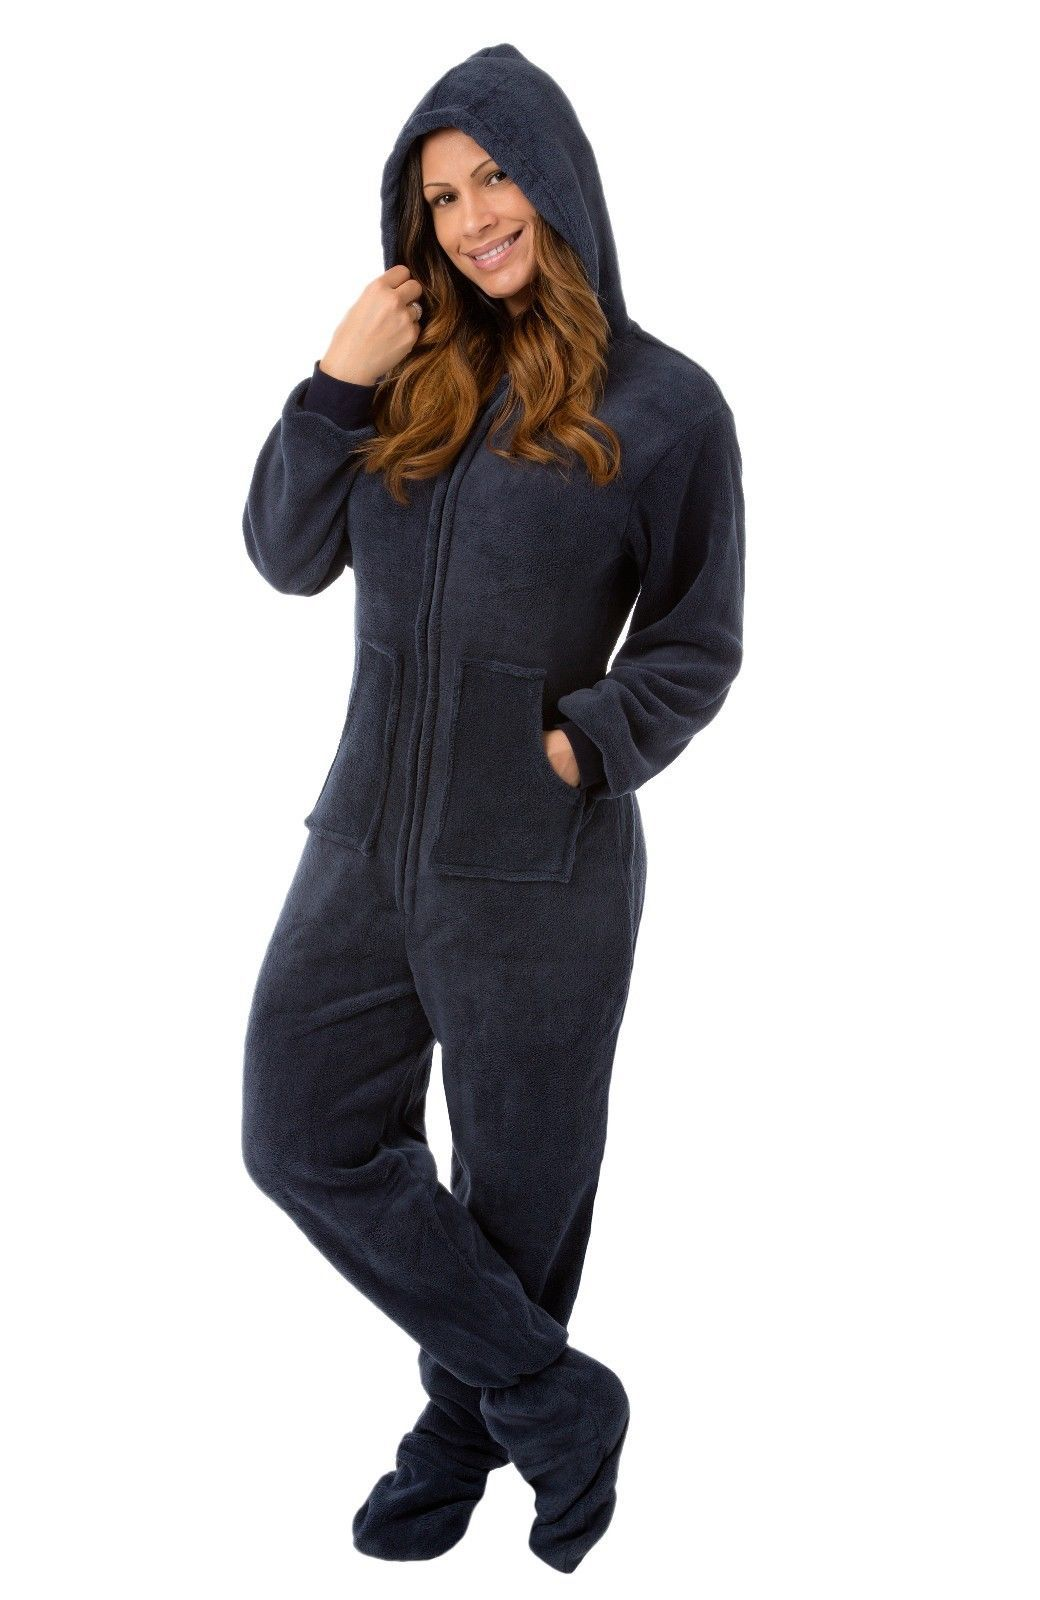 Stay warm from head to toe this winter in footie pajamas with hoods or footless one piece pajamas for $ These PJs are so much fun for sleeping, lounging, or even a pajama party. Great selection of colors and patterns in every size.